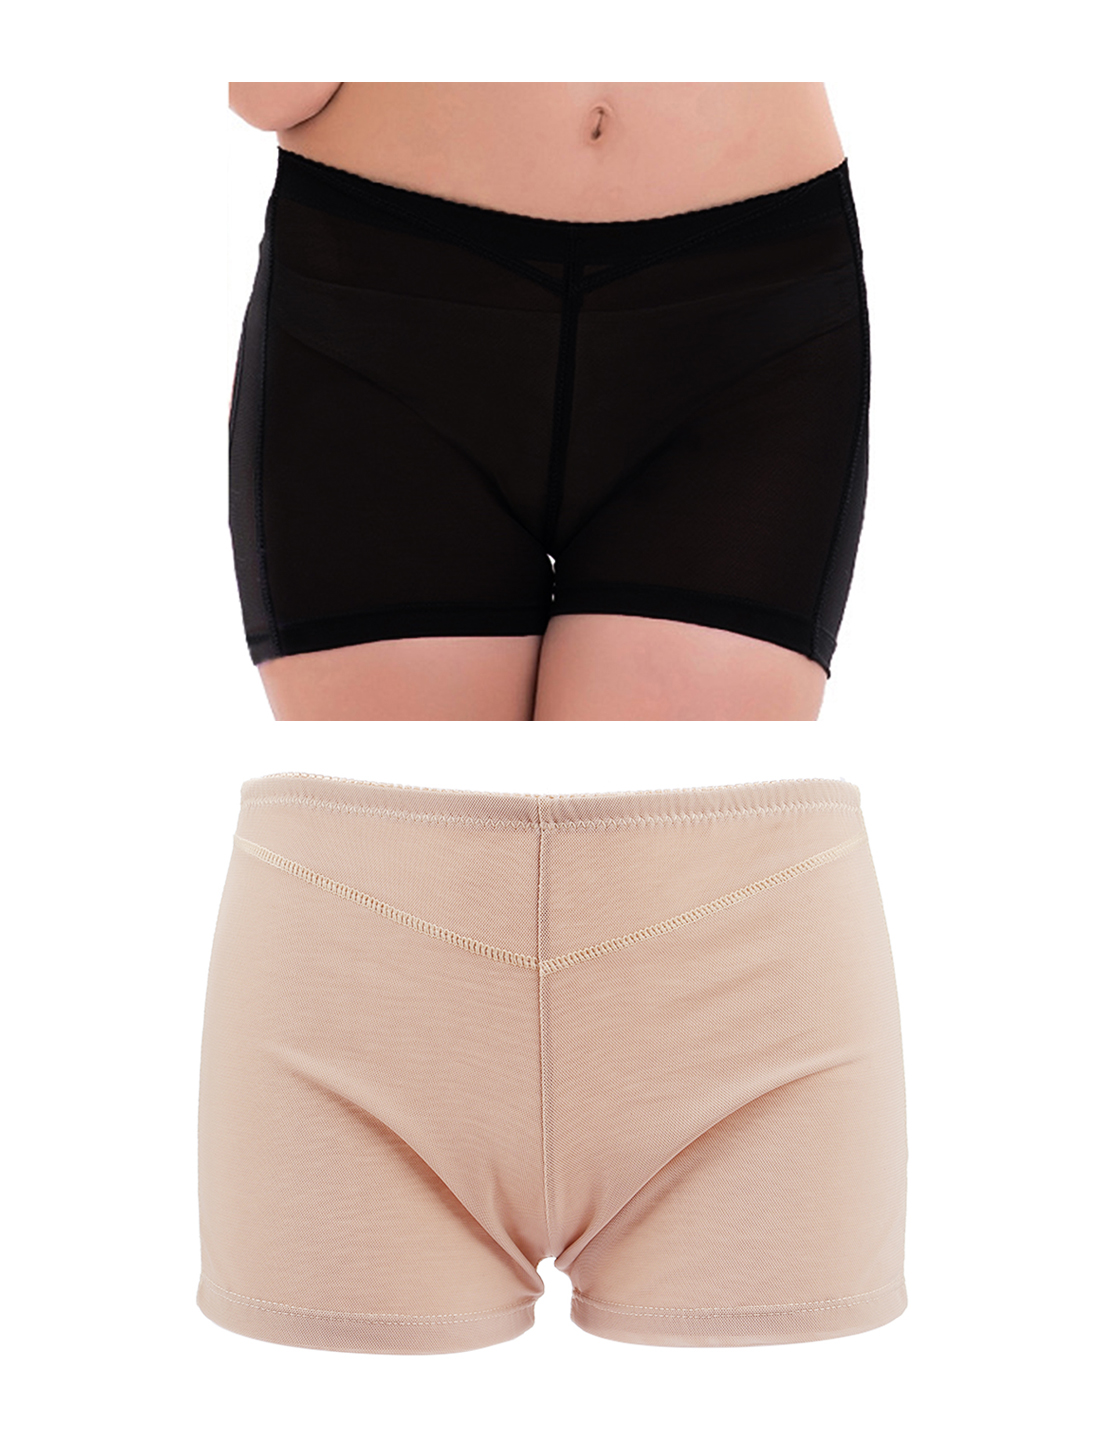 Women Butt Lifter Tummy Control Shapewear Enhancer Boyshort Underwear Beige Black X-Large